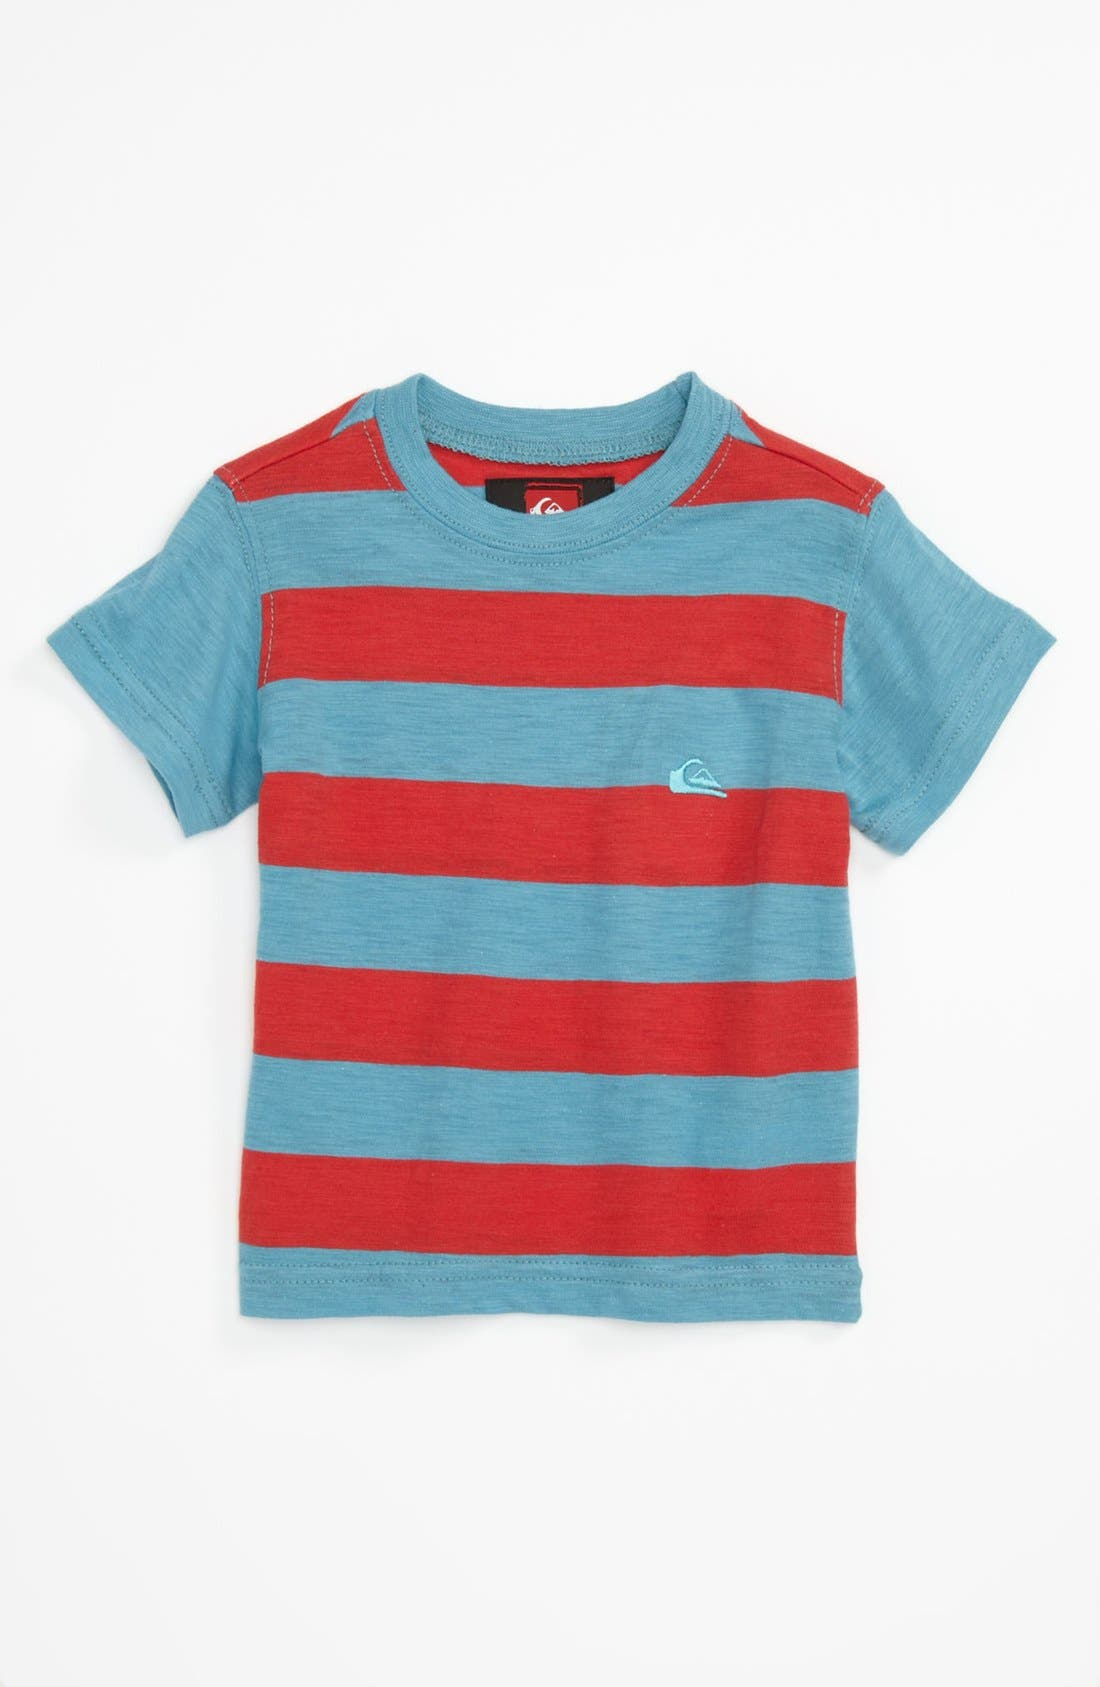 Alternate Image 1 Selected - Quiksilver 'Zebra Juice' T-Shirt (Baby)